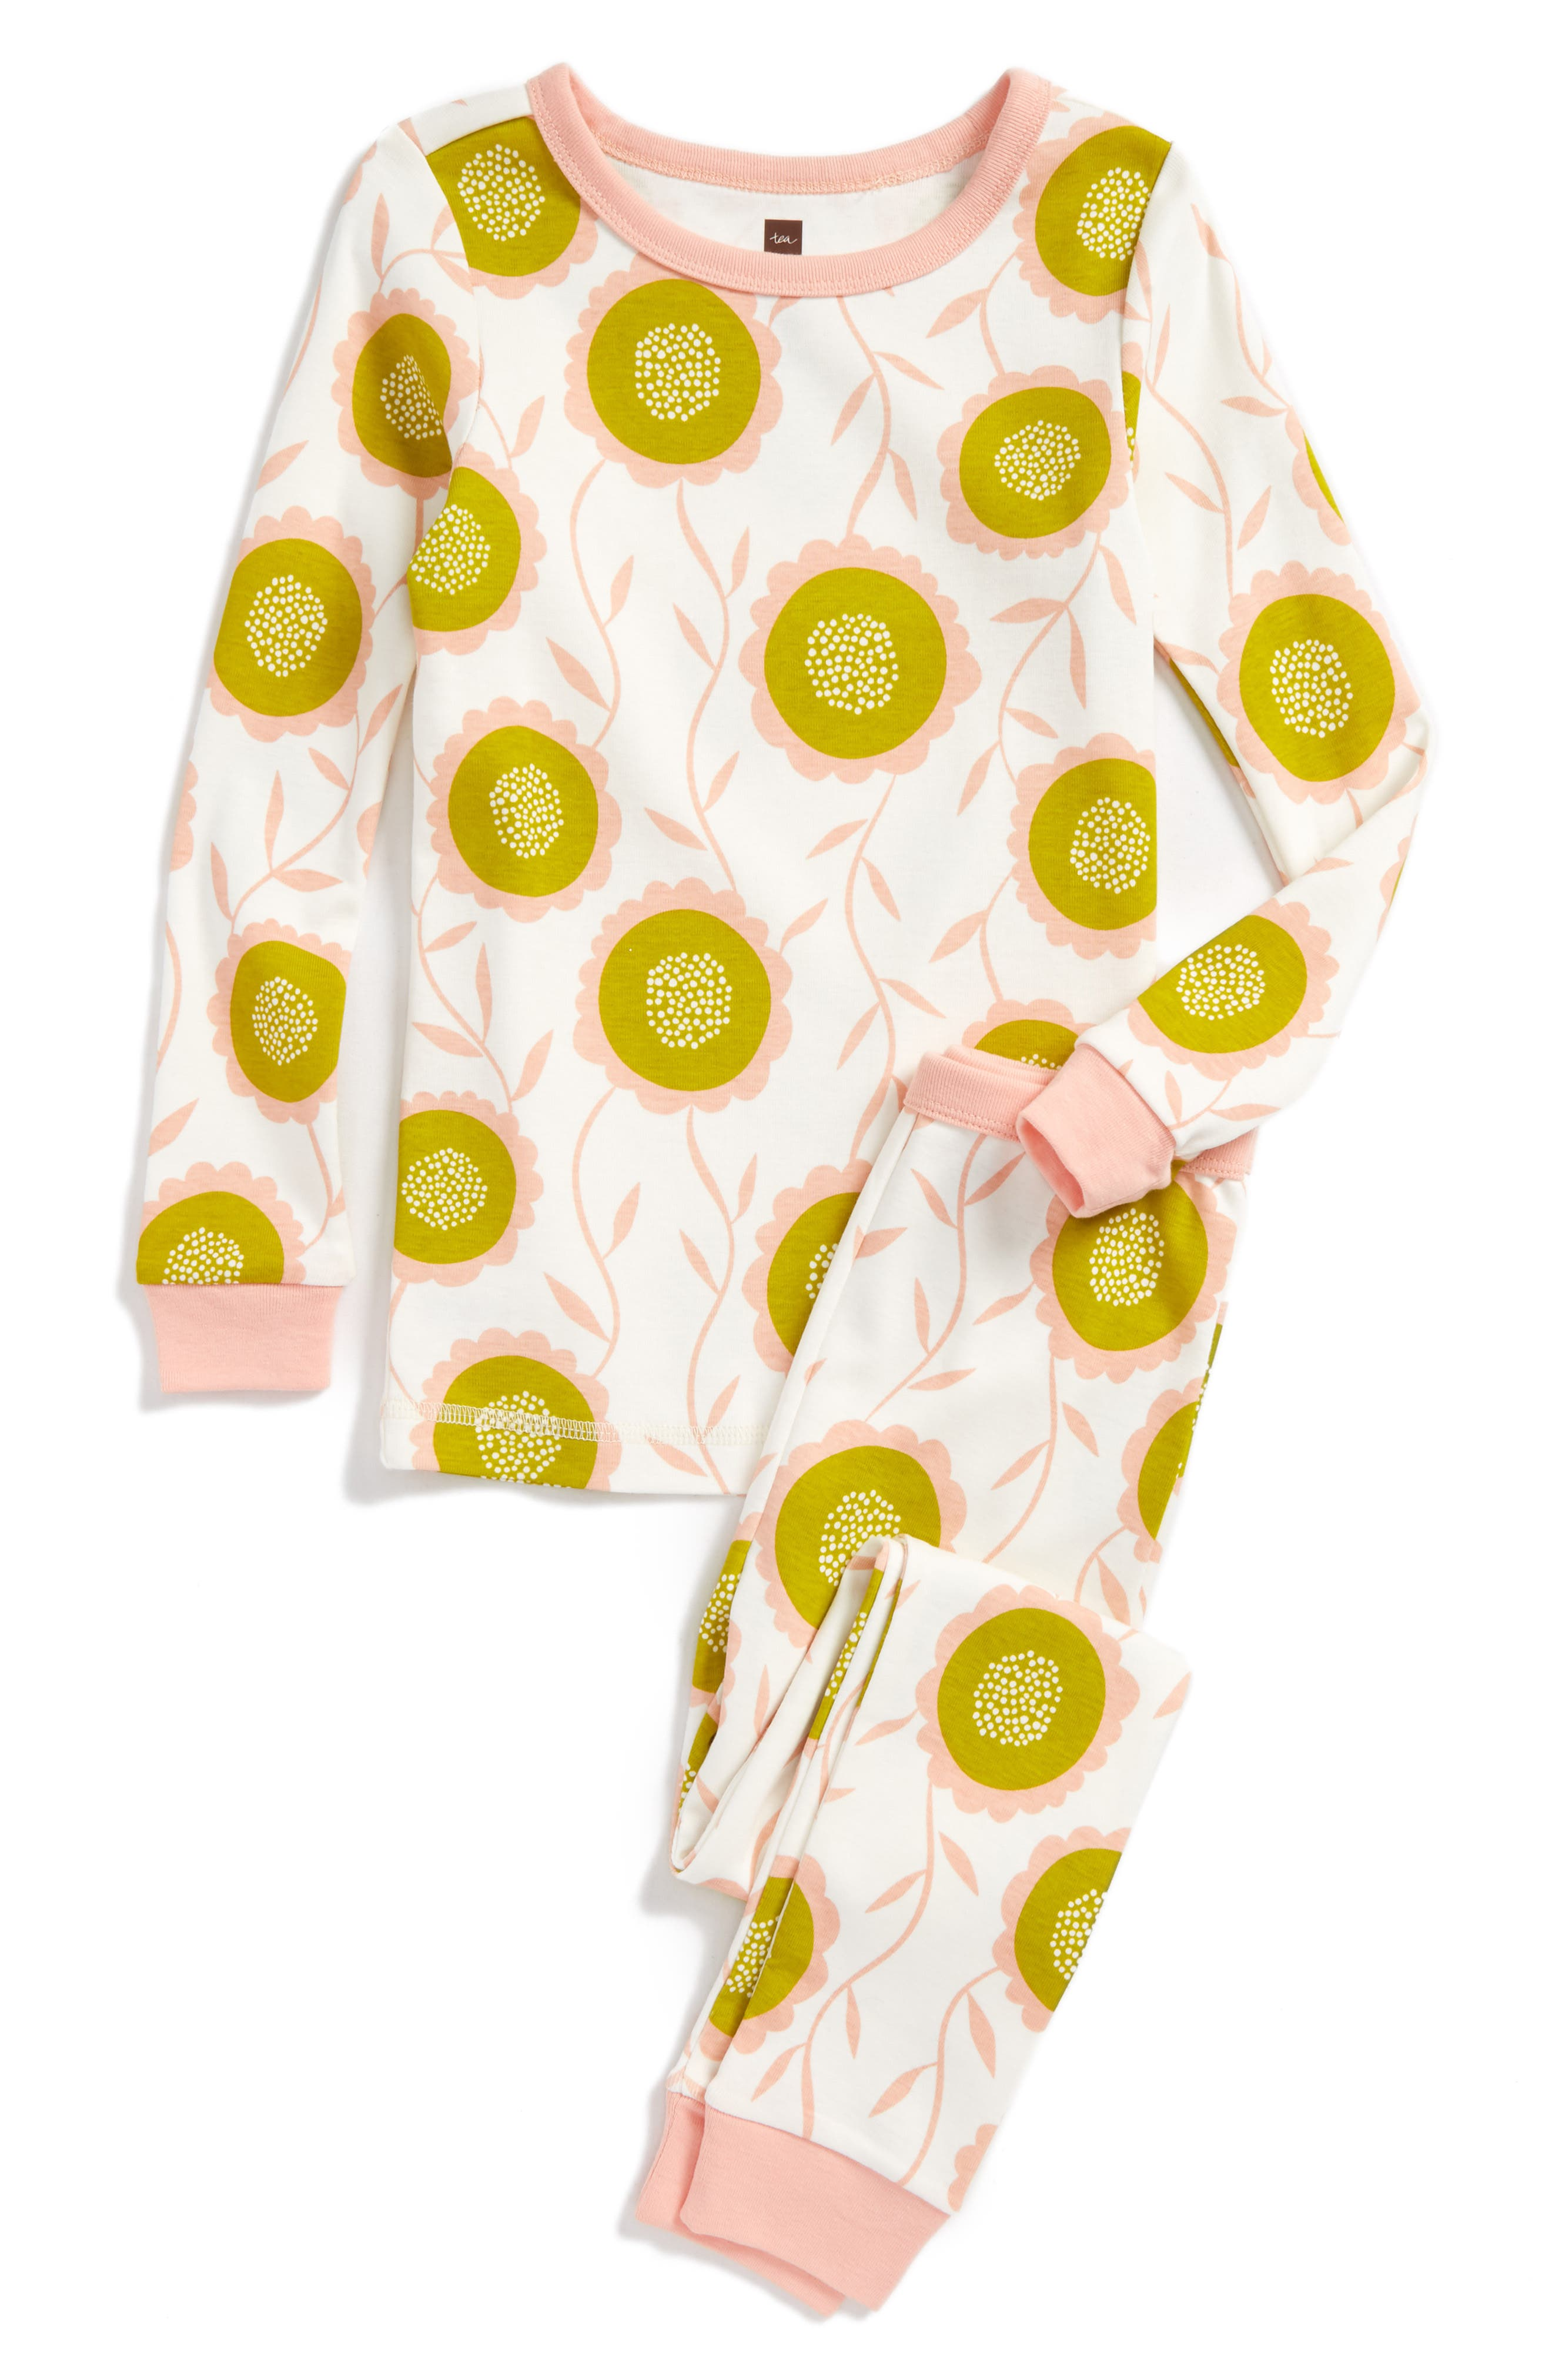 Main Image - Tea Collection Bruadarach Fitted Two-Piece Pajamas (Toddler Girls, Little Girls & Big Girls)